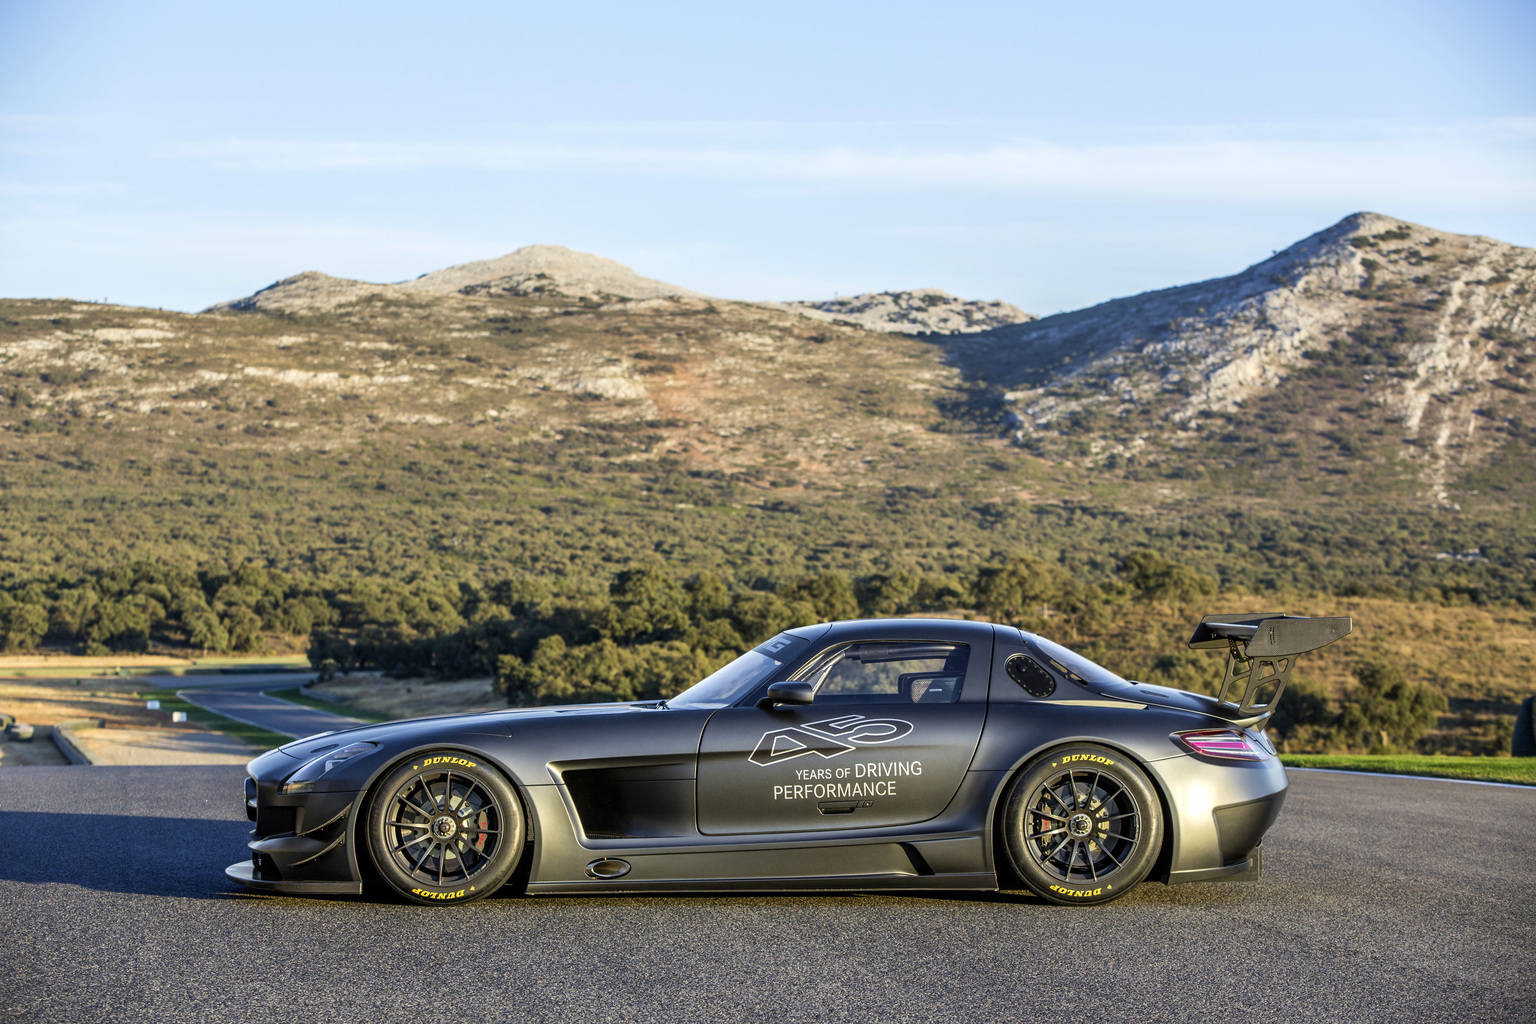 2012 mercedes benz sls amg gt3 45th anniversary review. Black Bedroom Furniture Sets. Home Design Ideas